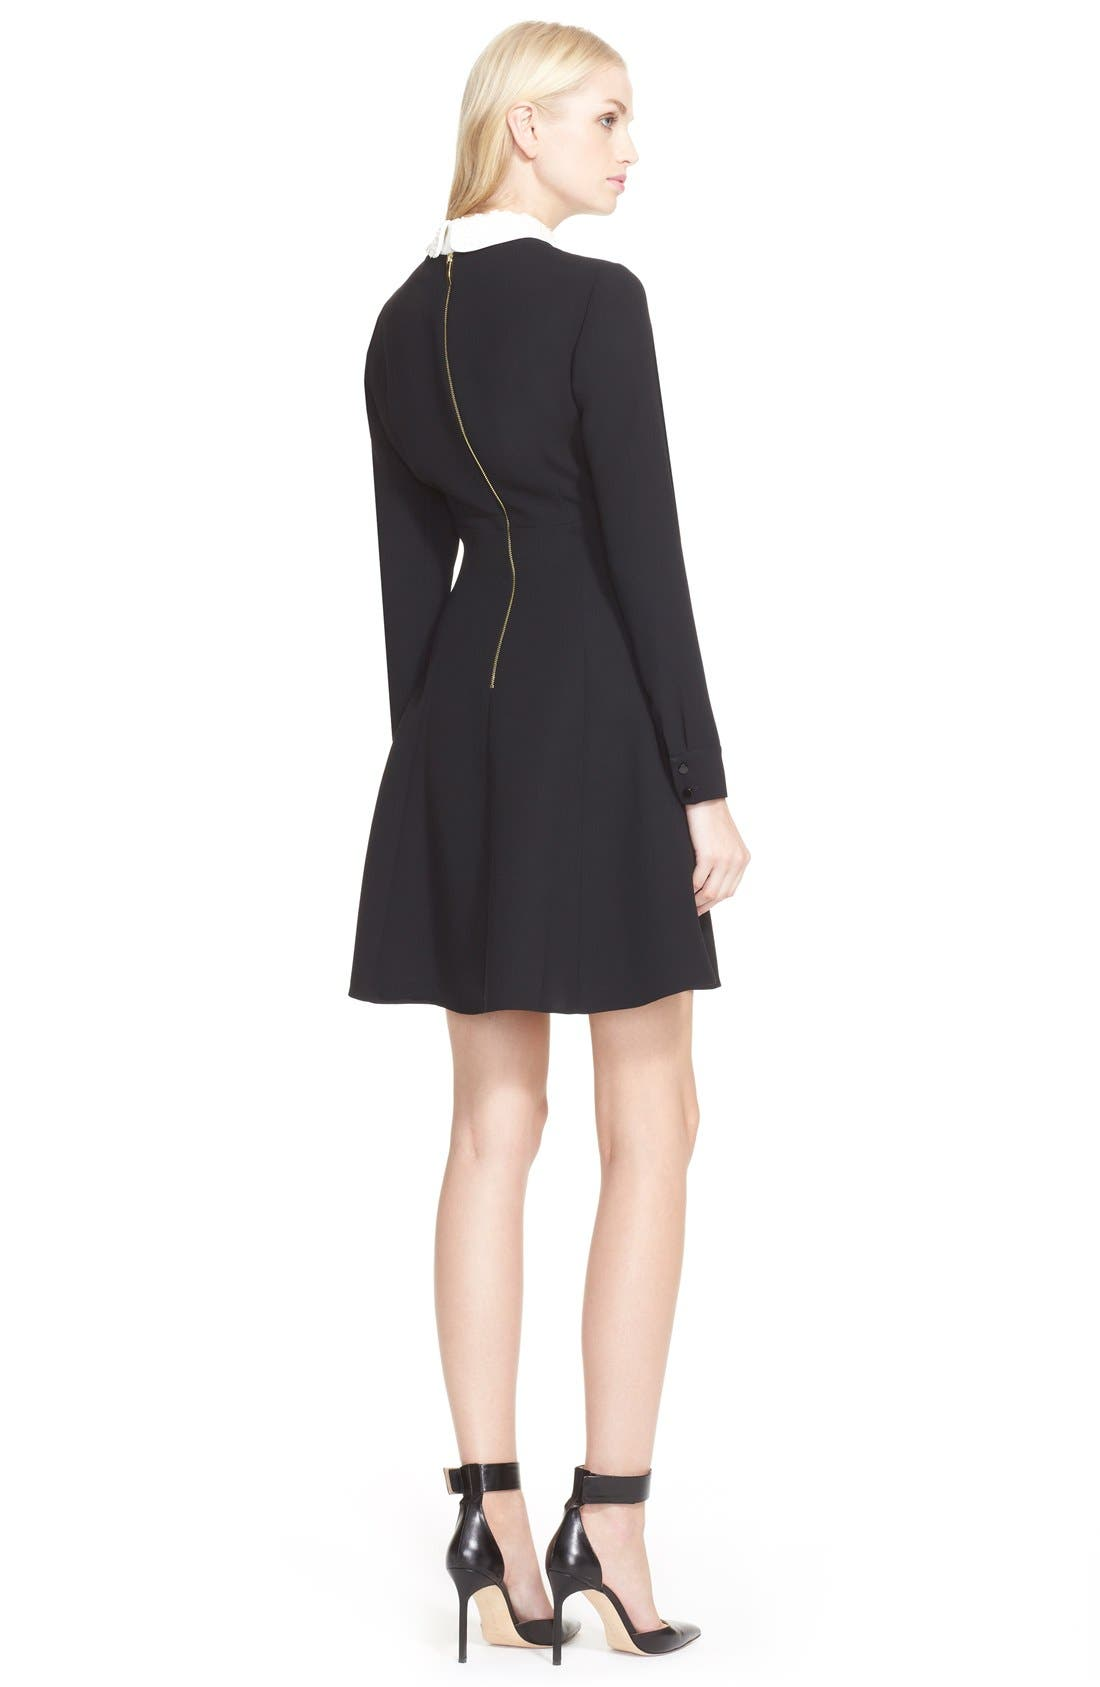 kate spade new york long sleeve sequin collar dress,                             Alternate thumbnail 3, color,                             001